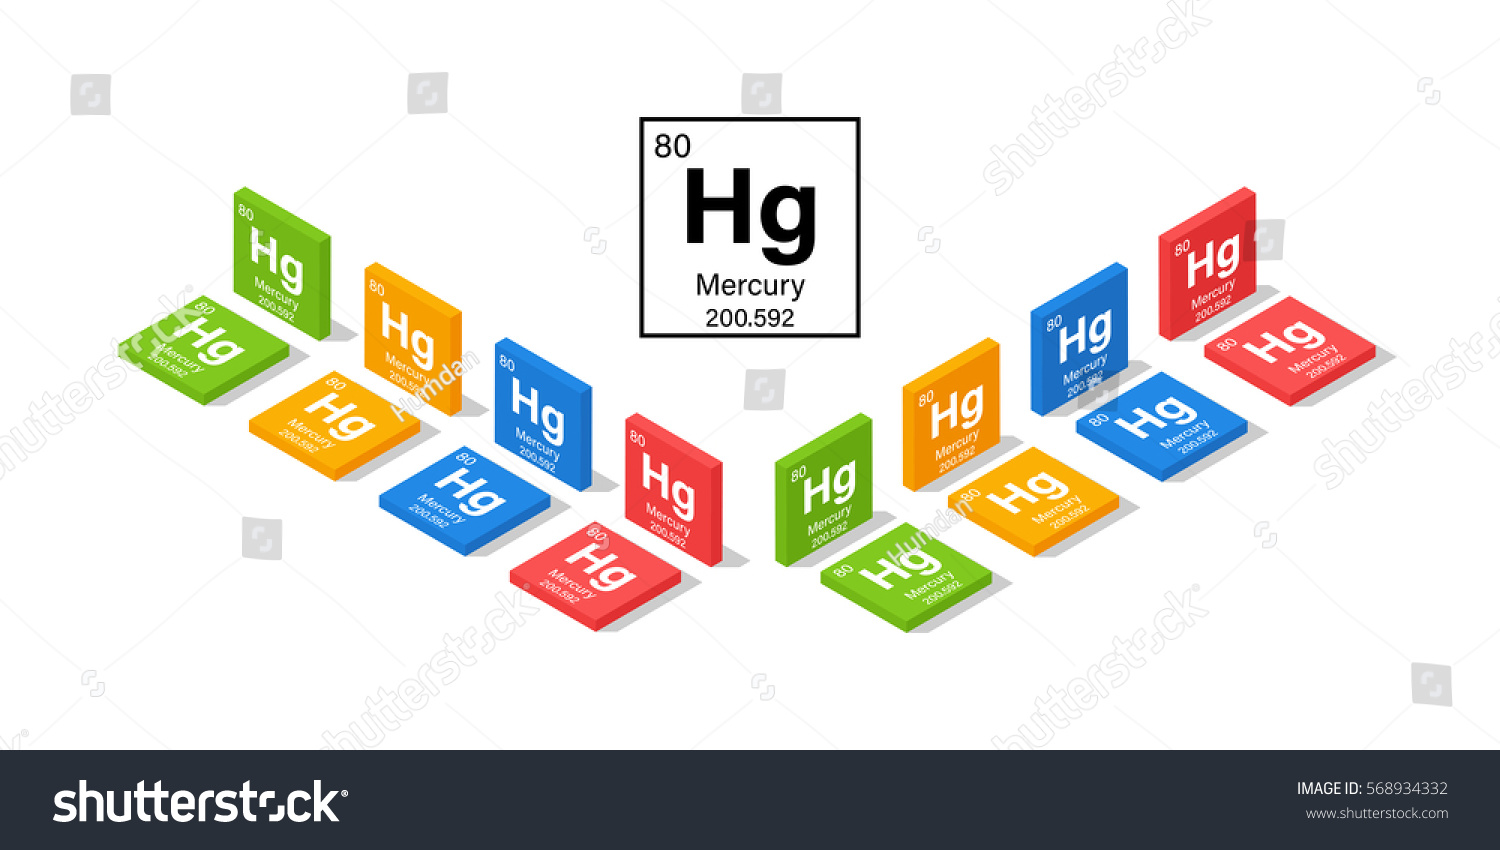 Is mercury on the periodic table image collections periodic the periodic table levi image collections periodic table images the periodic table levi images periodic table gamestrikefo Images